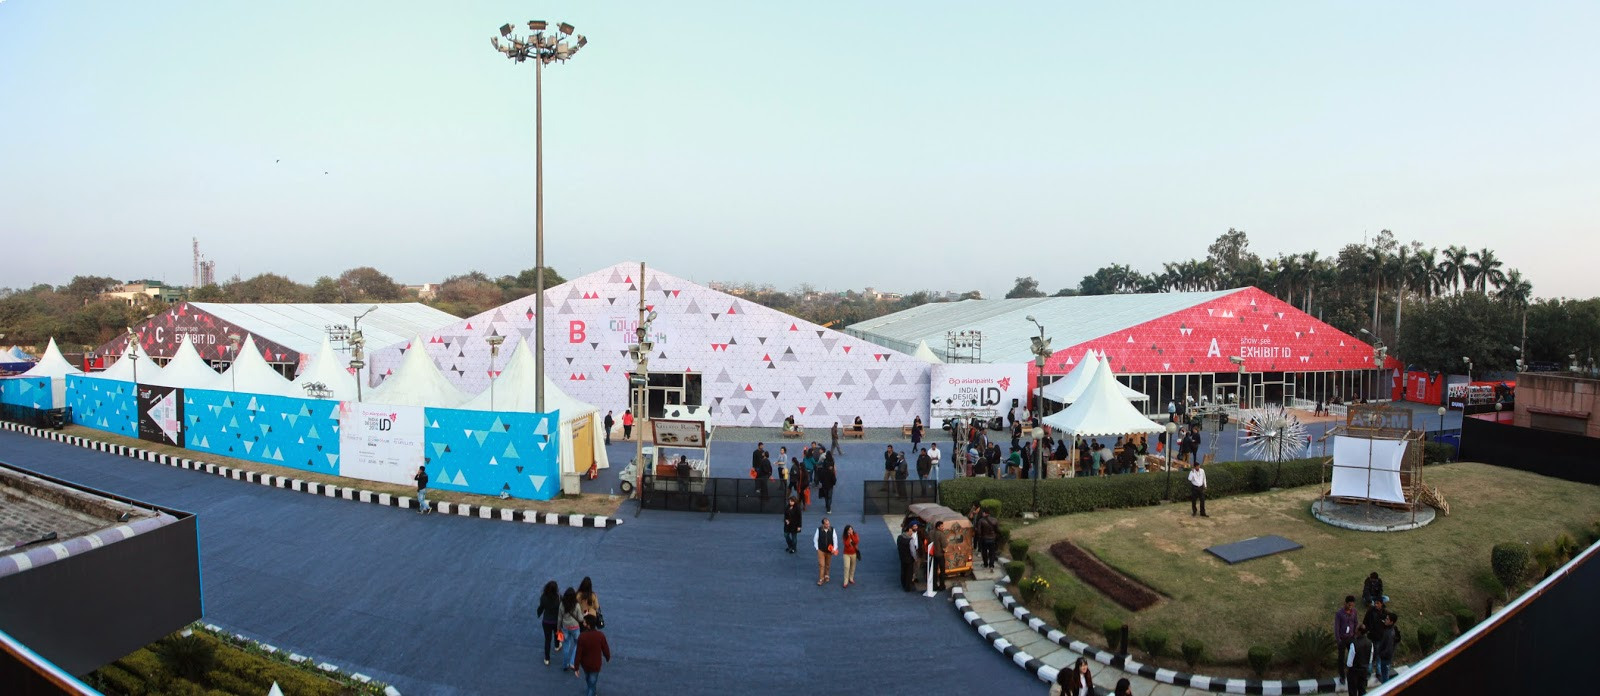 Asian Paints India Design ID 2015 - A Definitive Design Week in Home Decor and Home Aesthetics For Our Sweet Homes